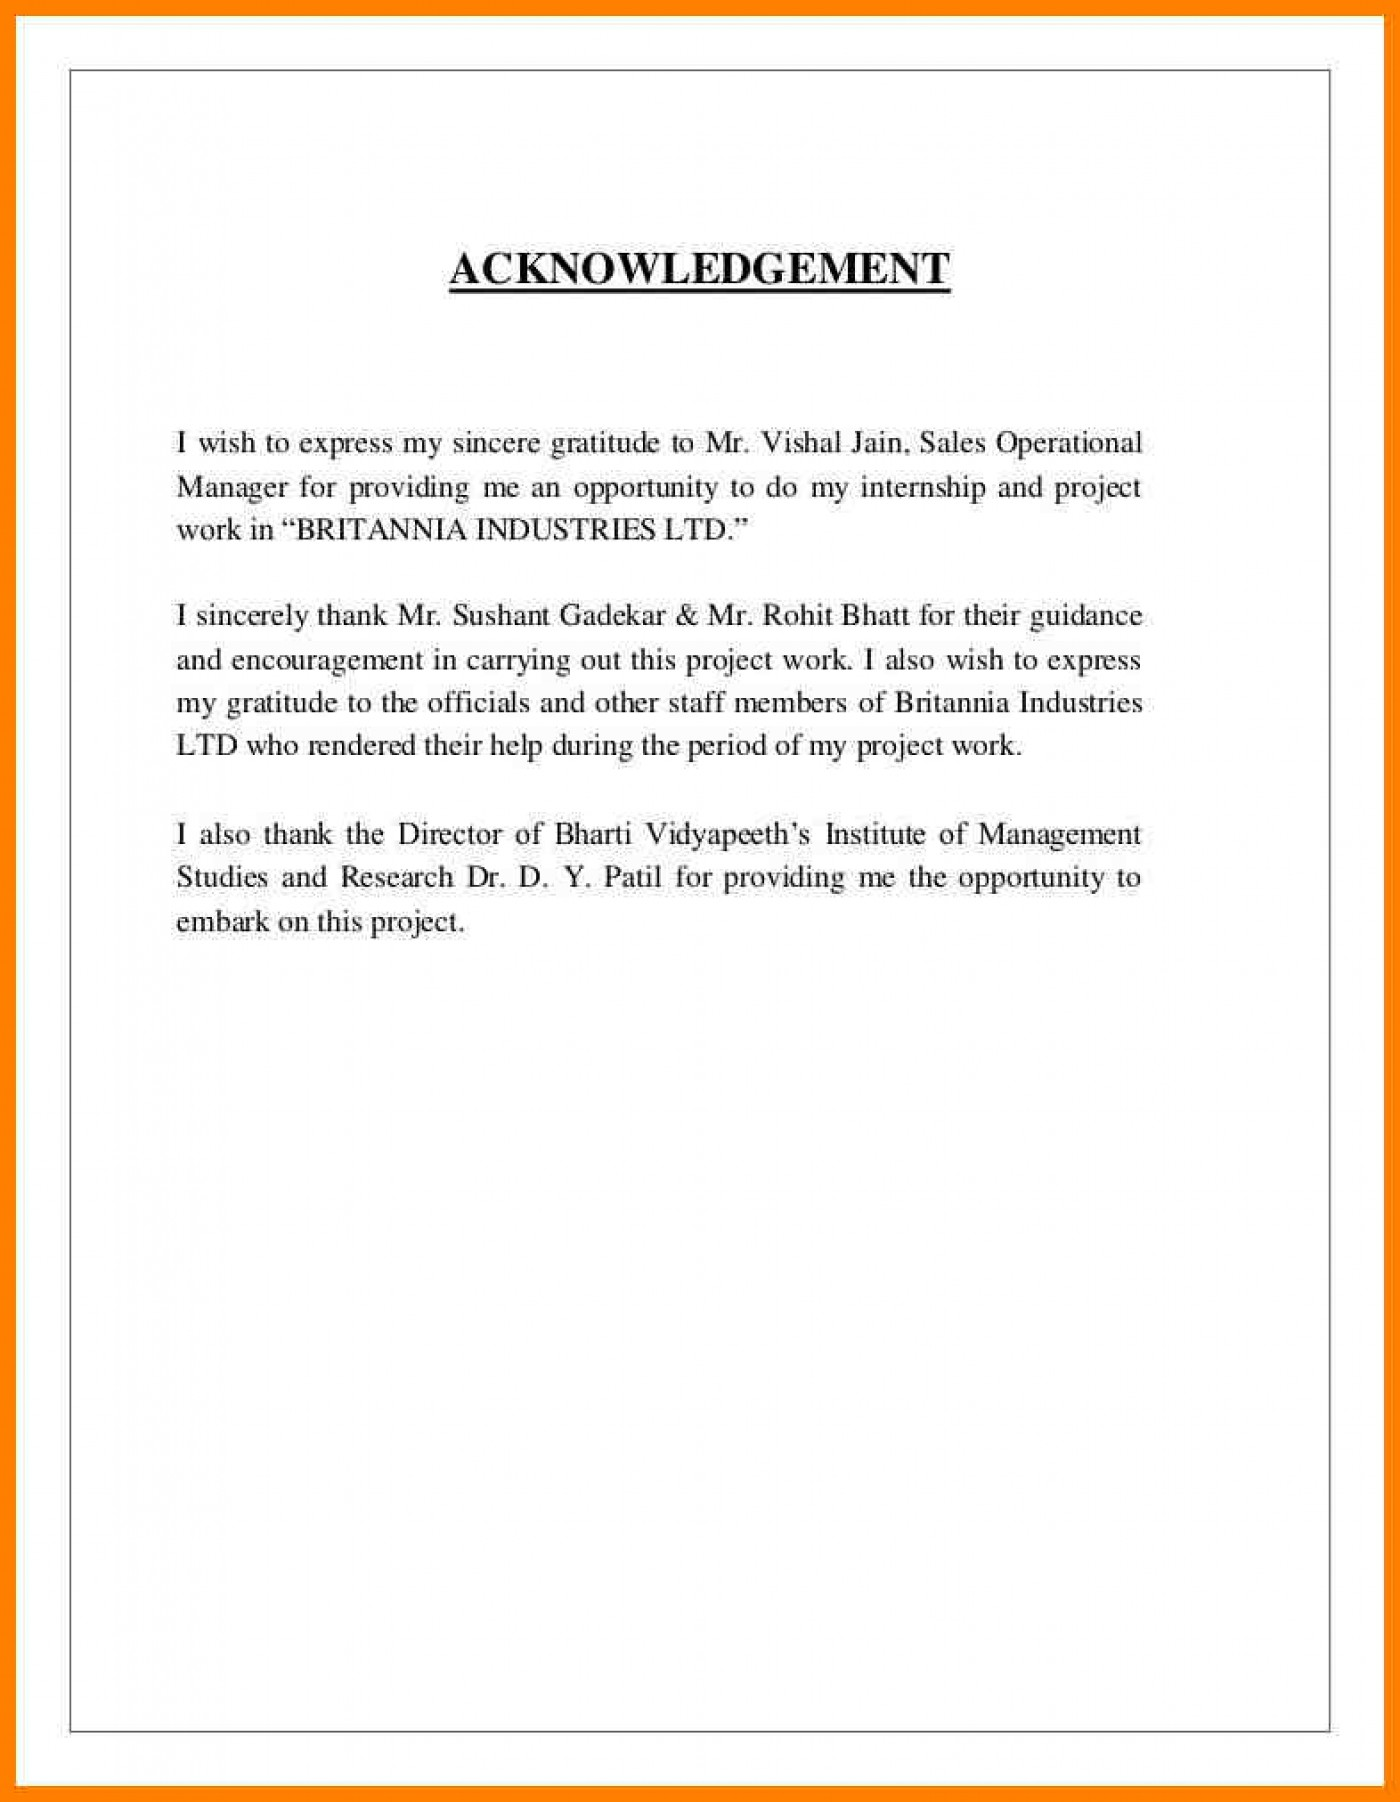 027 Sample Acknowledgement Page For Research Papers On Free Term Paper Essays Apa Short Essay Format Staggering Topic Proposal Childhood Obesity Writing 1400